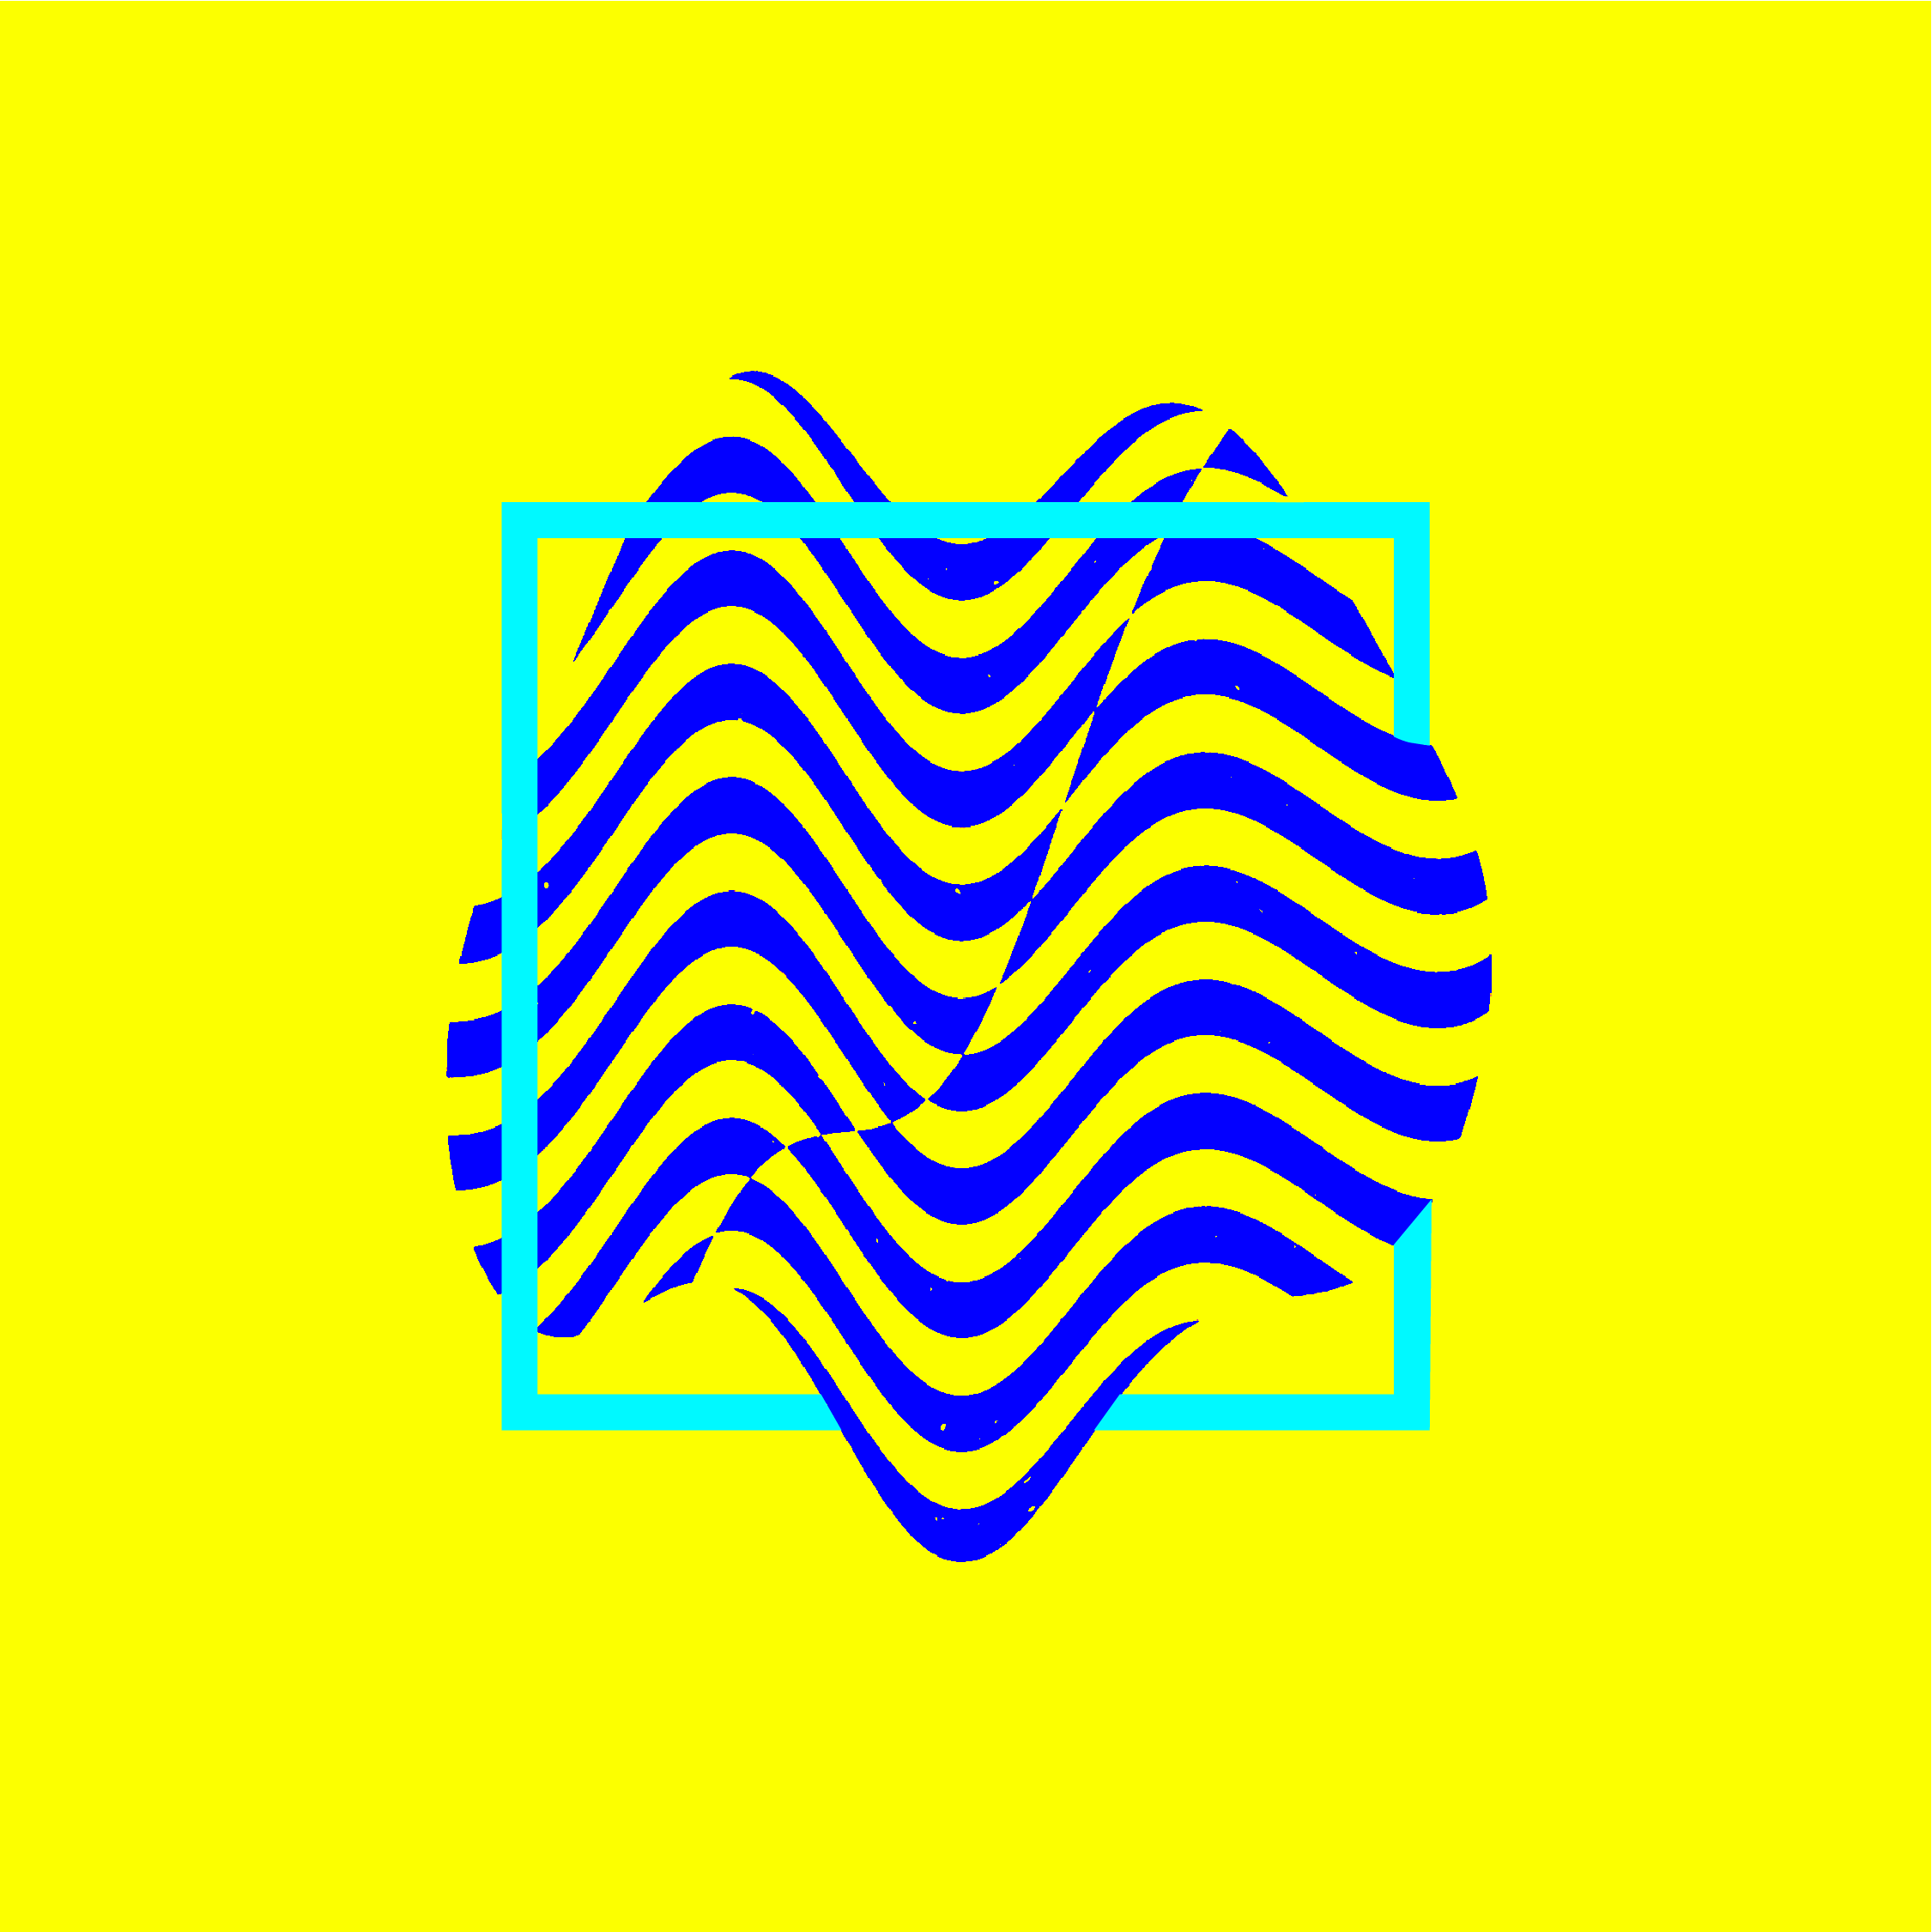 Abstract image of a bright yellow background with a wavy striped darker blue shape in the middle, and a square with a thick cyan blue stroke intersecting with the dark blue shape.